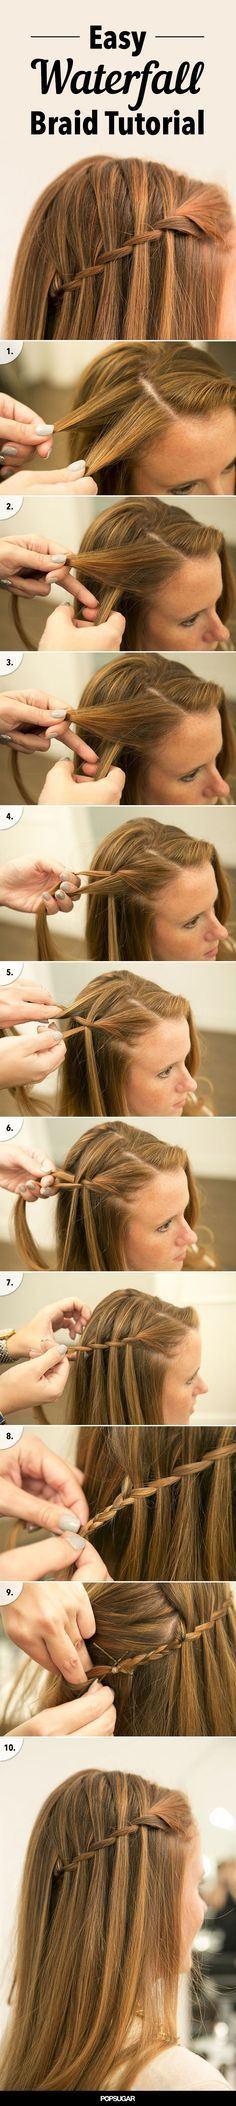 DIY Waterfall Braid long hair braids how to diy hair hairstyles hair tutorials easy hairstyles